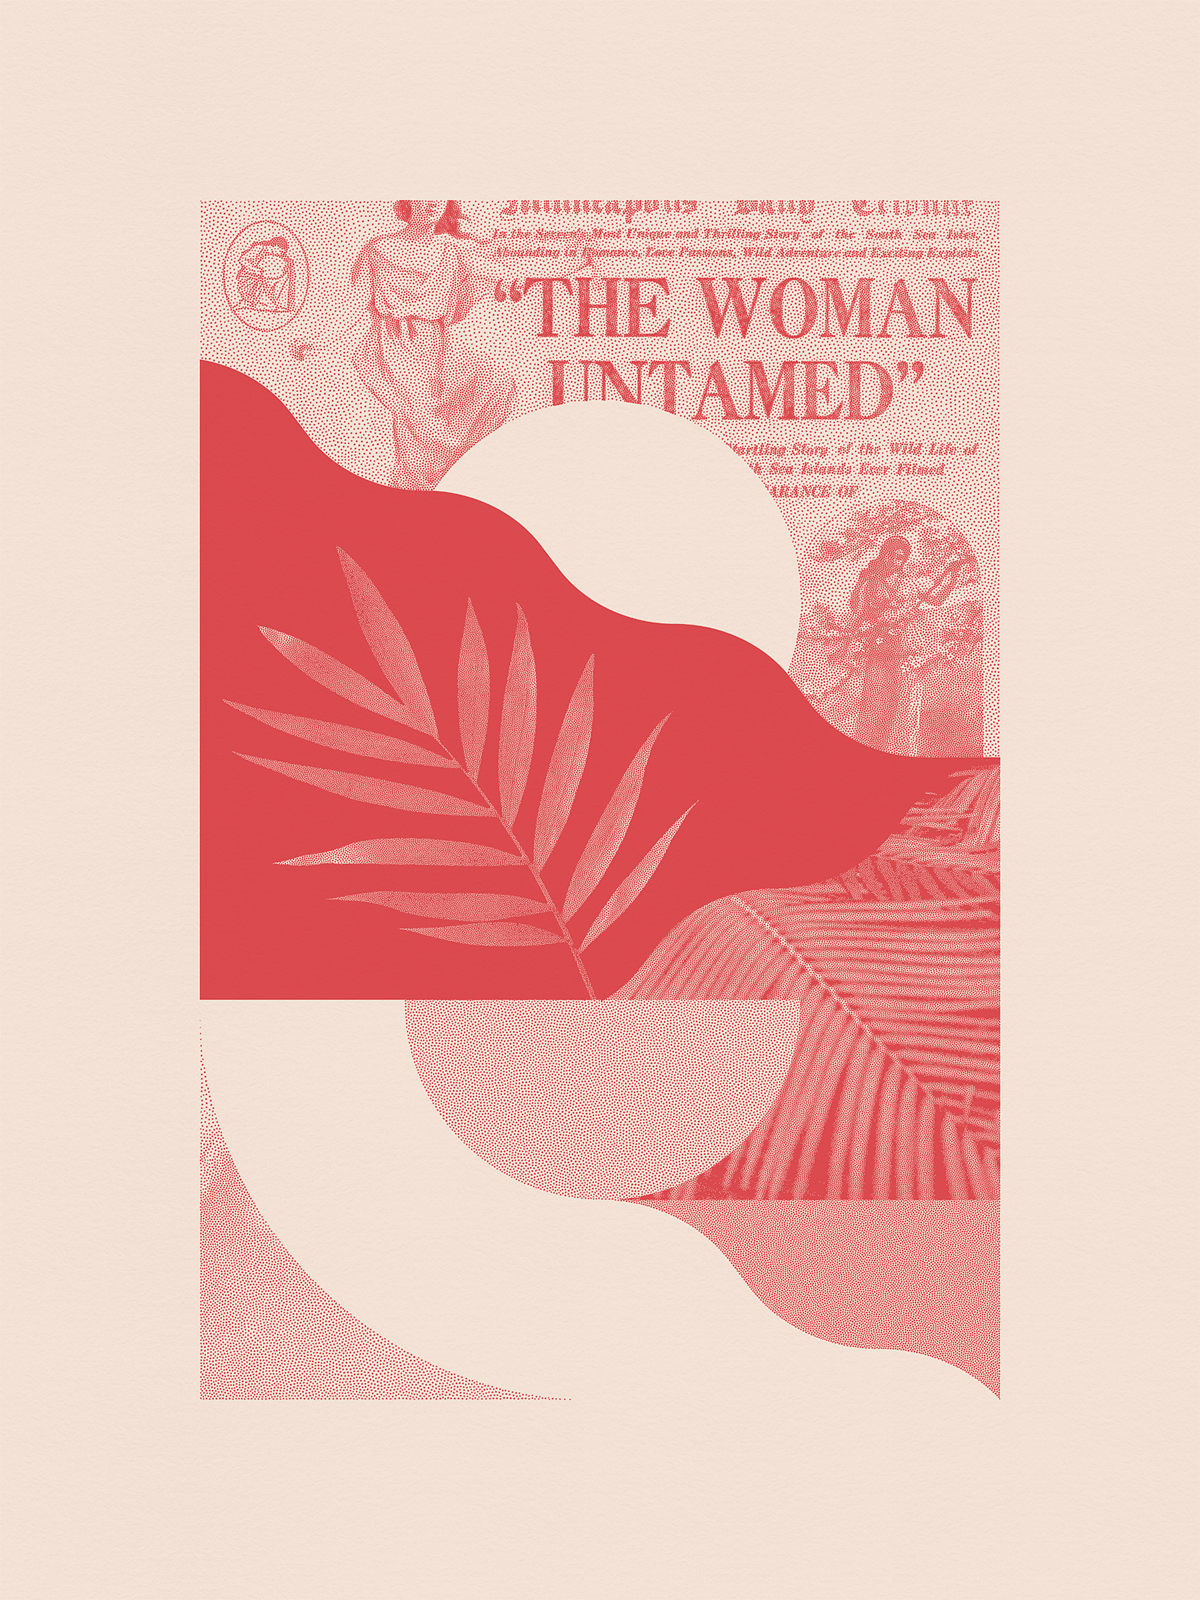 The Woman Untamed poster by Brent Schoepf